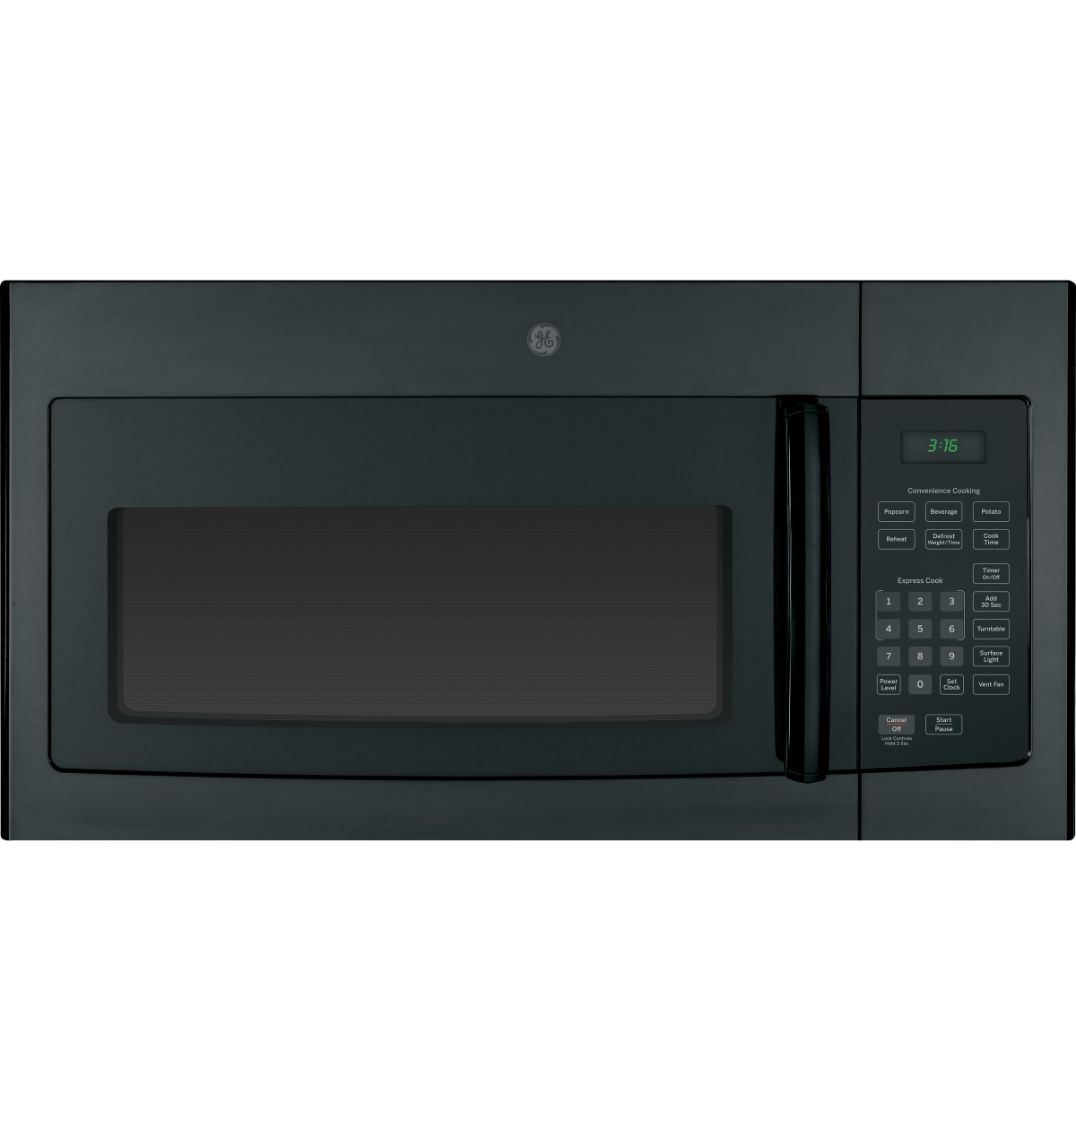 GE 1.7 Cu. Ft. Over-the-Range Microwave Oven